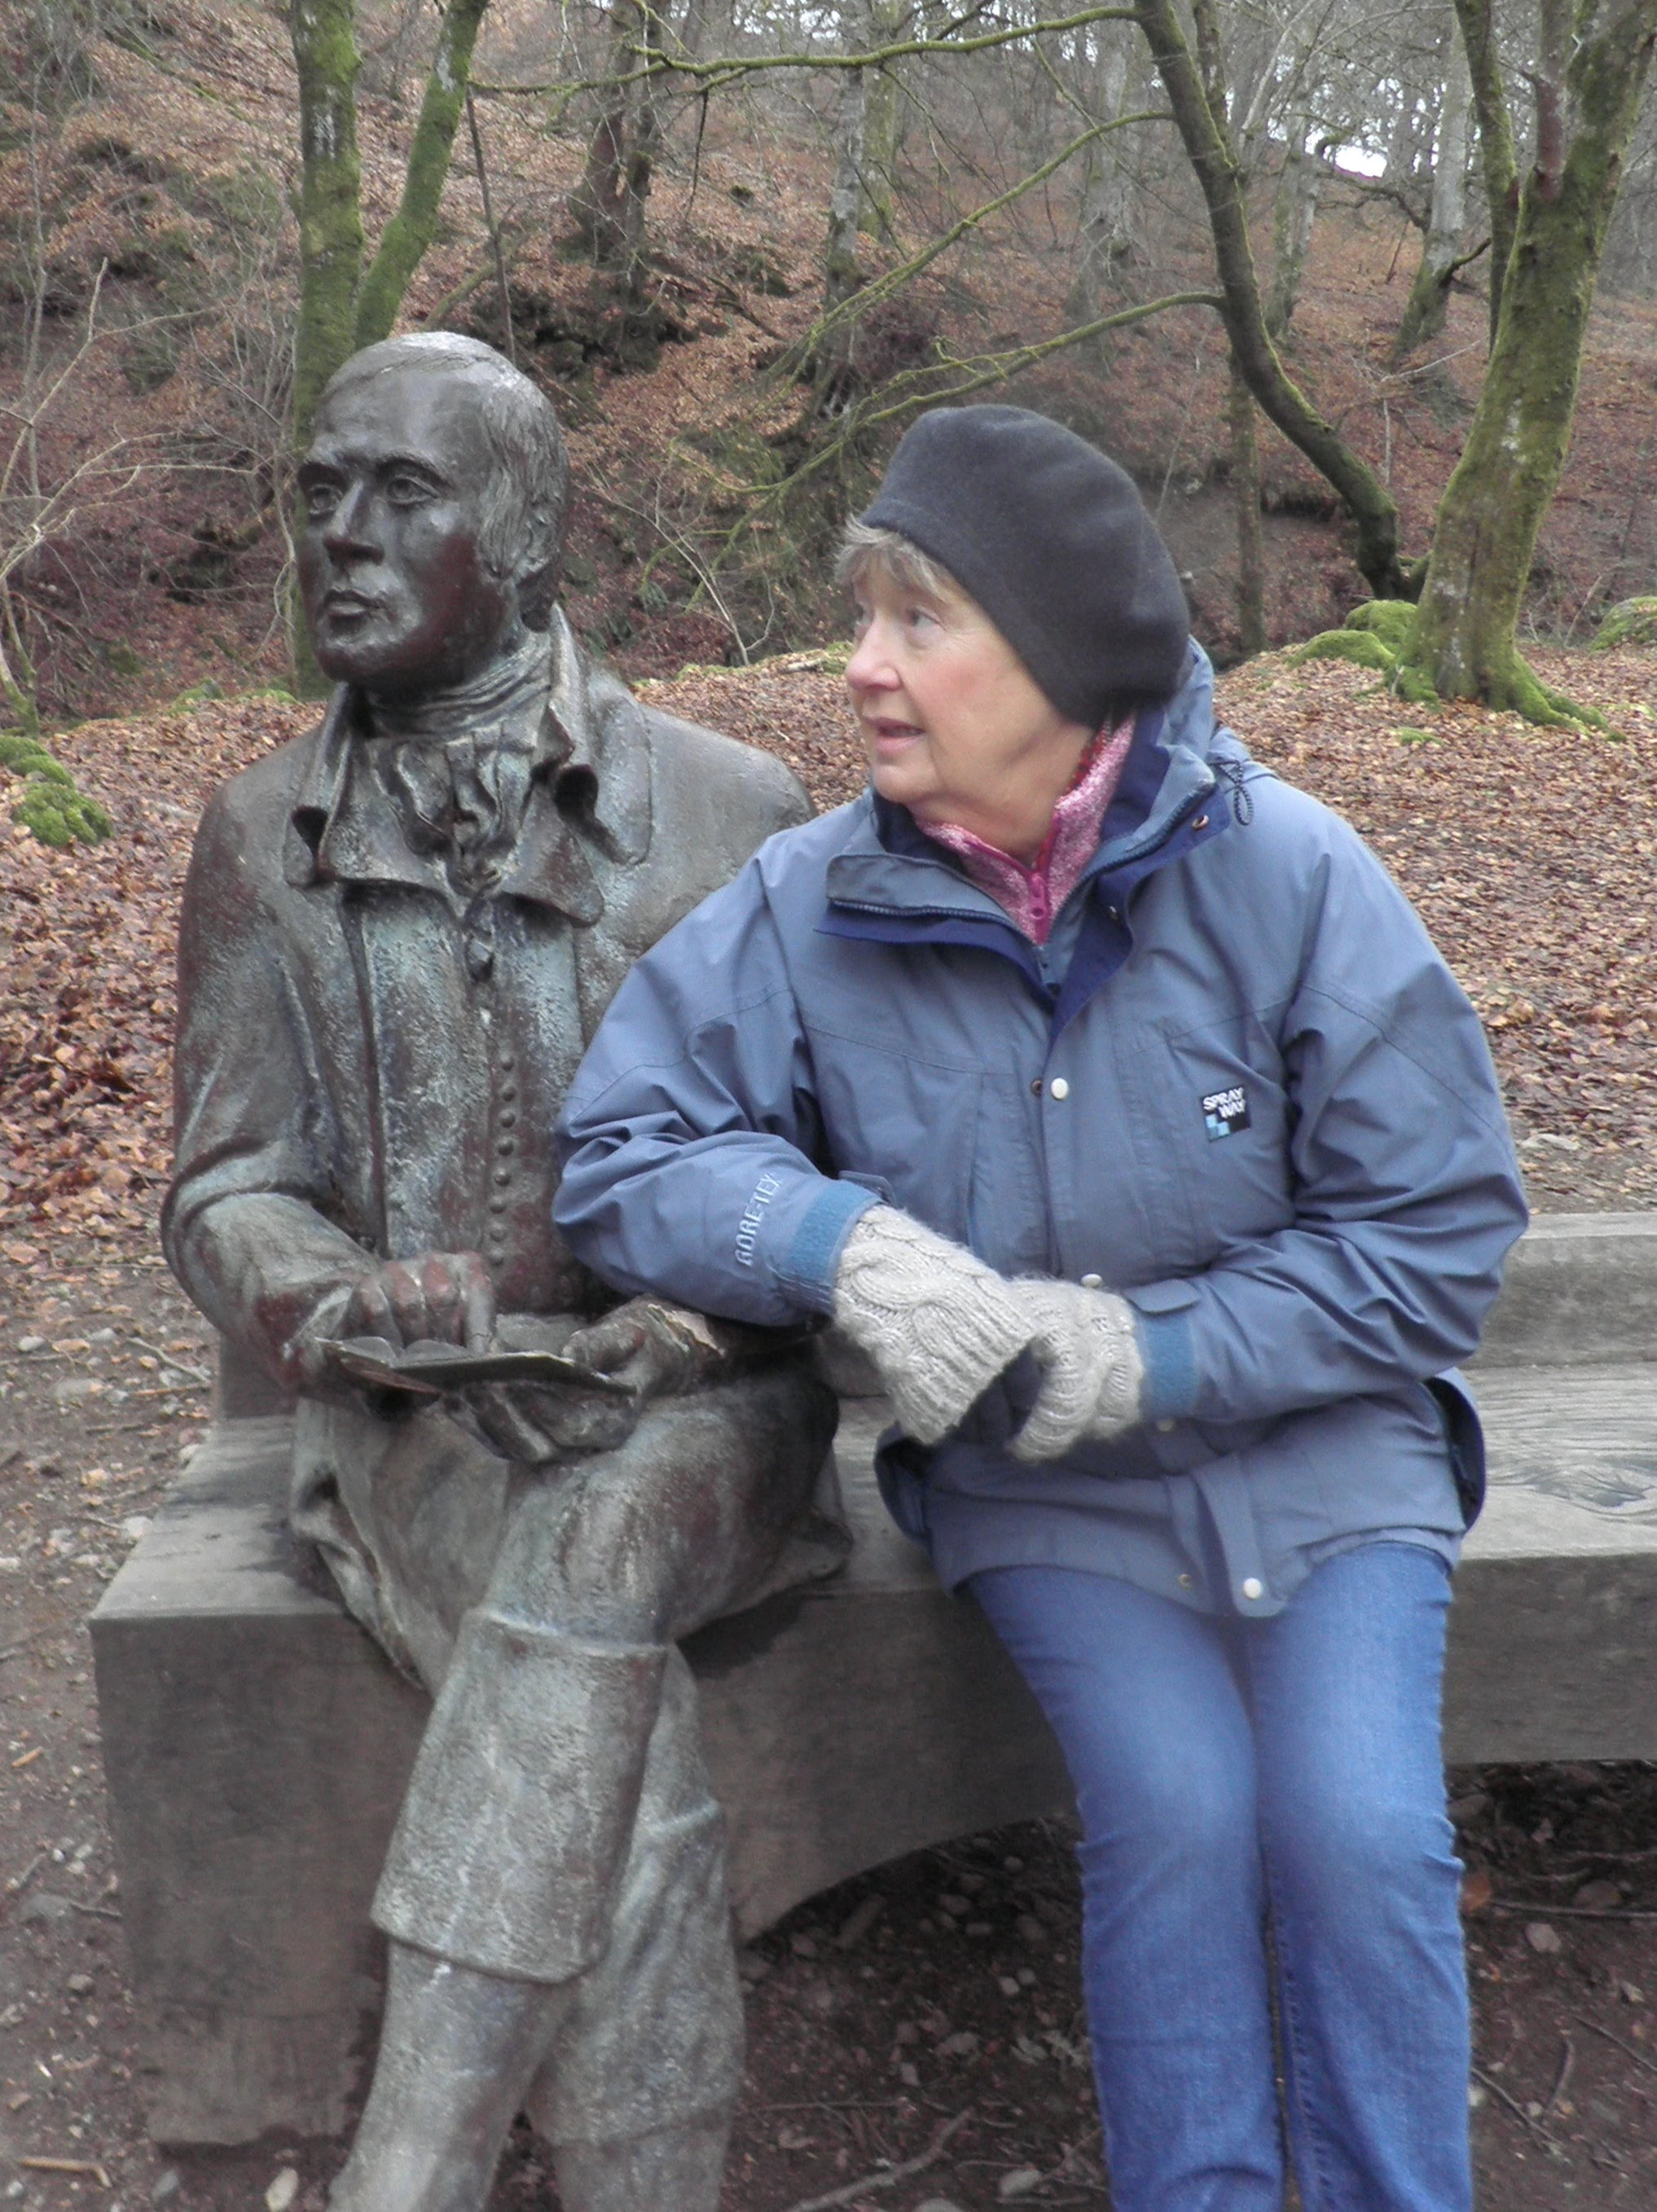 Me with Robert Burns at the Birks o' Aberfeldy